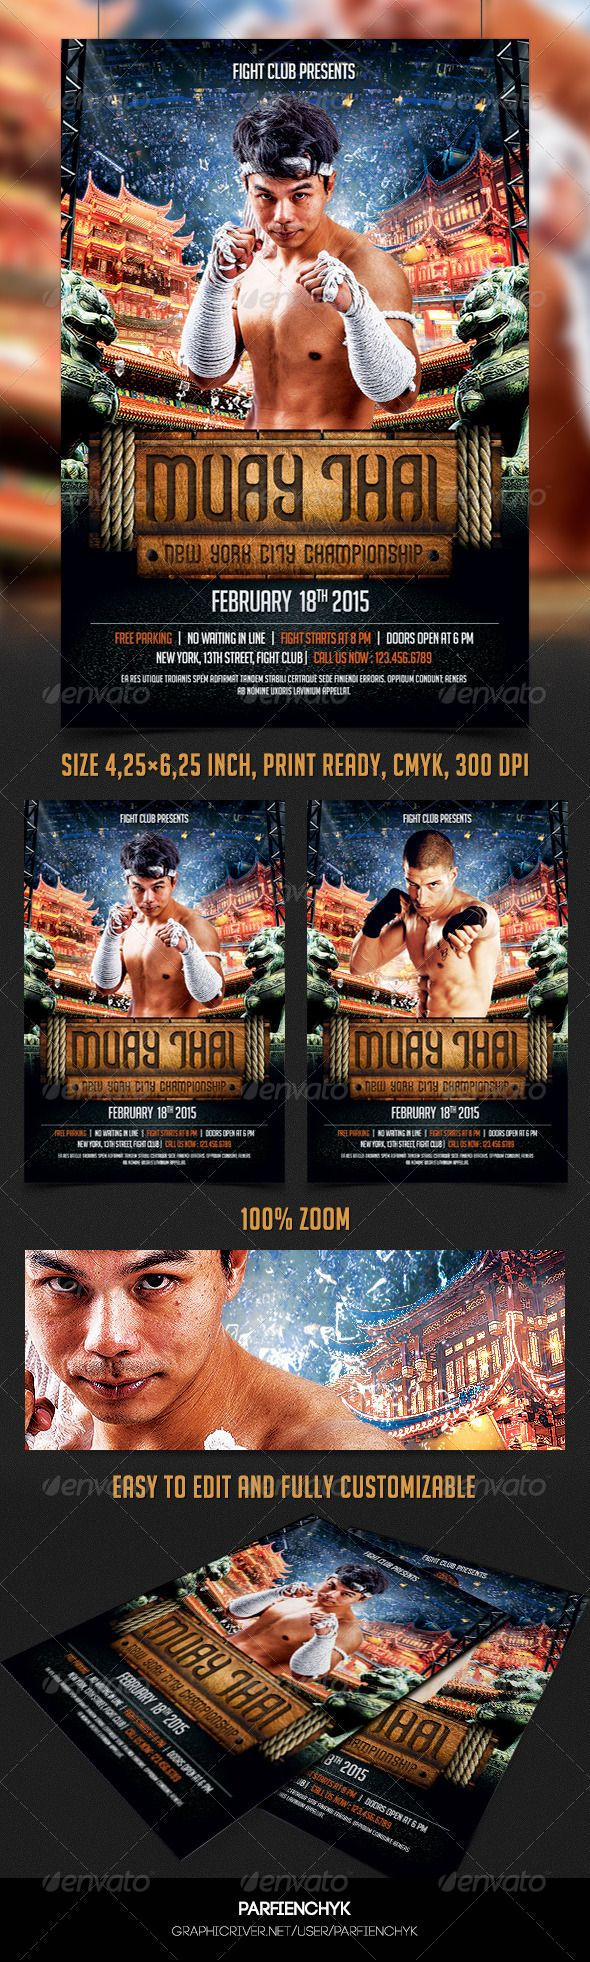 Muay Thai Flyer Template Boxing Match Cage Fight Fight show – Ufc Flyer Template